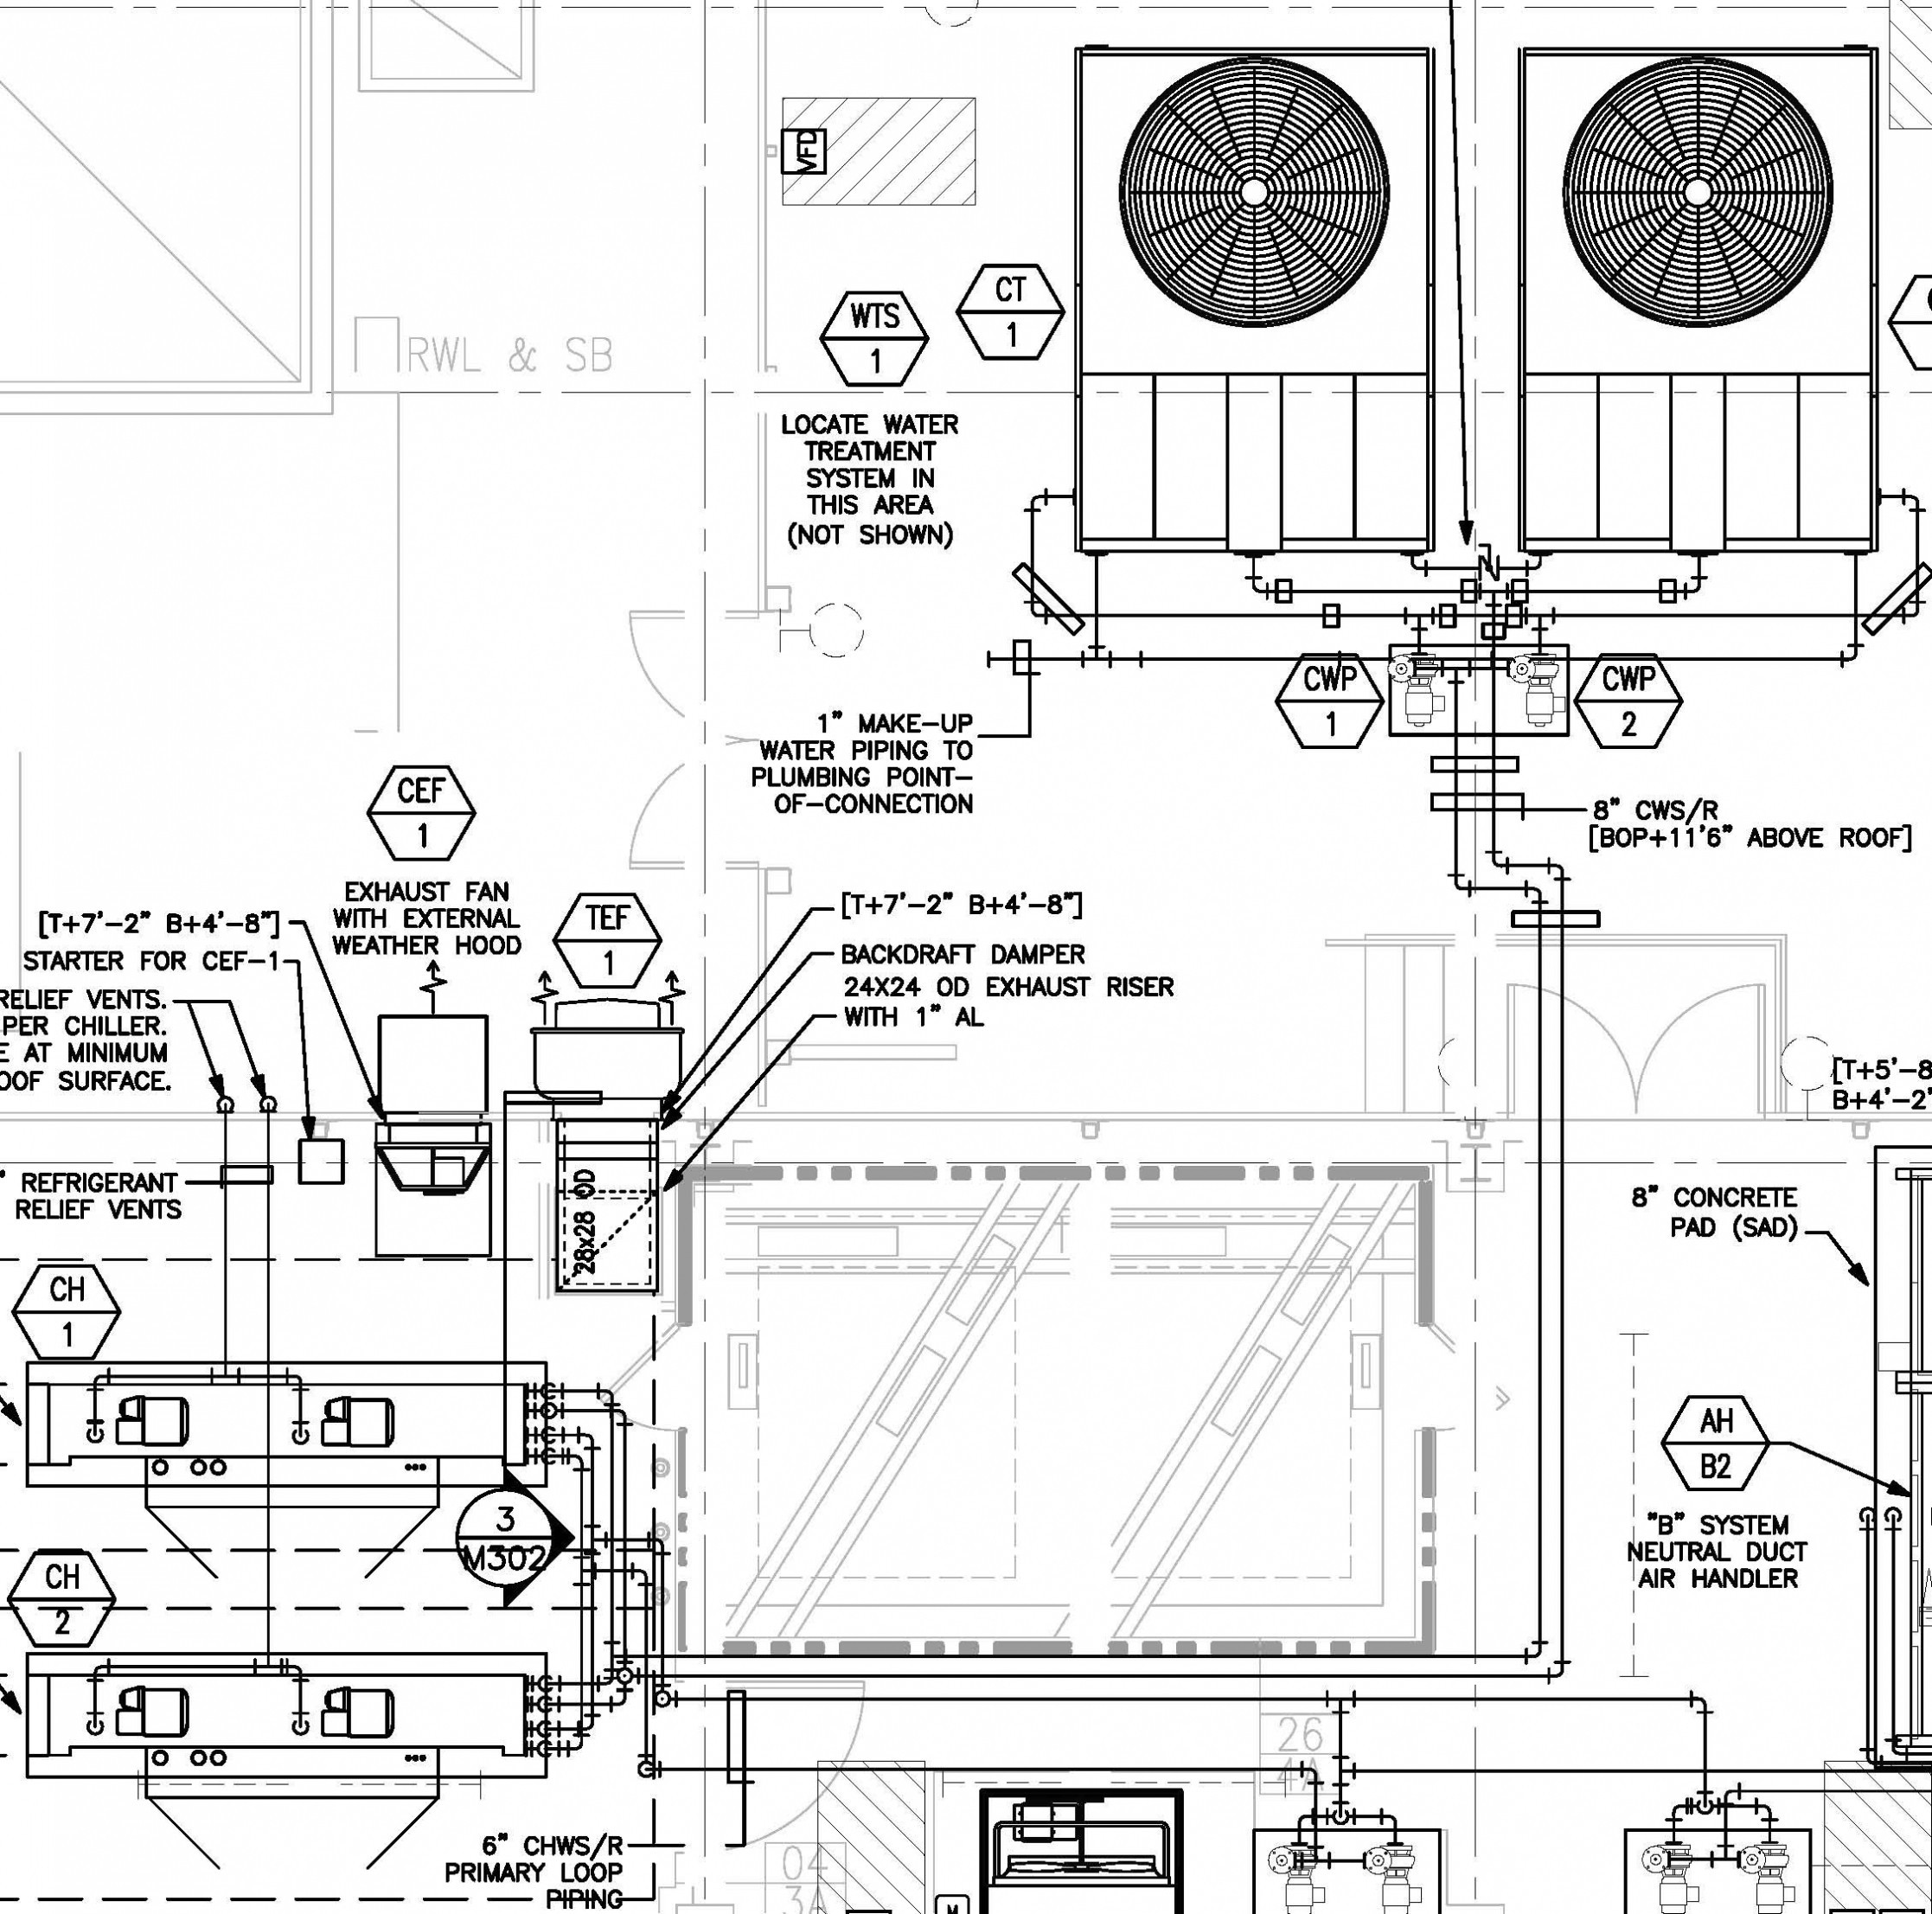 Diagram Of Car Engine Cooling System Wiring Diagram for Audi A4 1997 Inspirationa 2004 Audi A4 Cooling Of Diagram Of Car Engine Cooling System